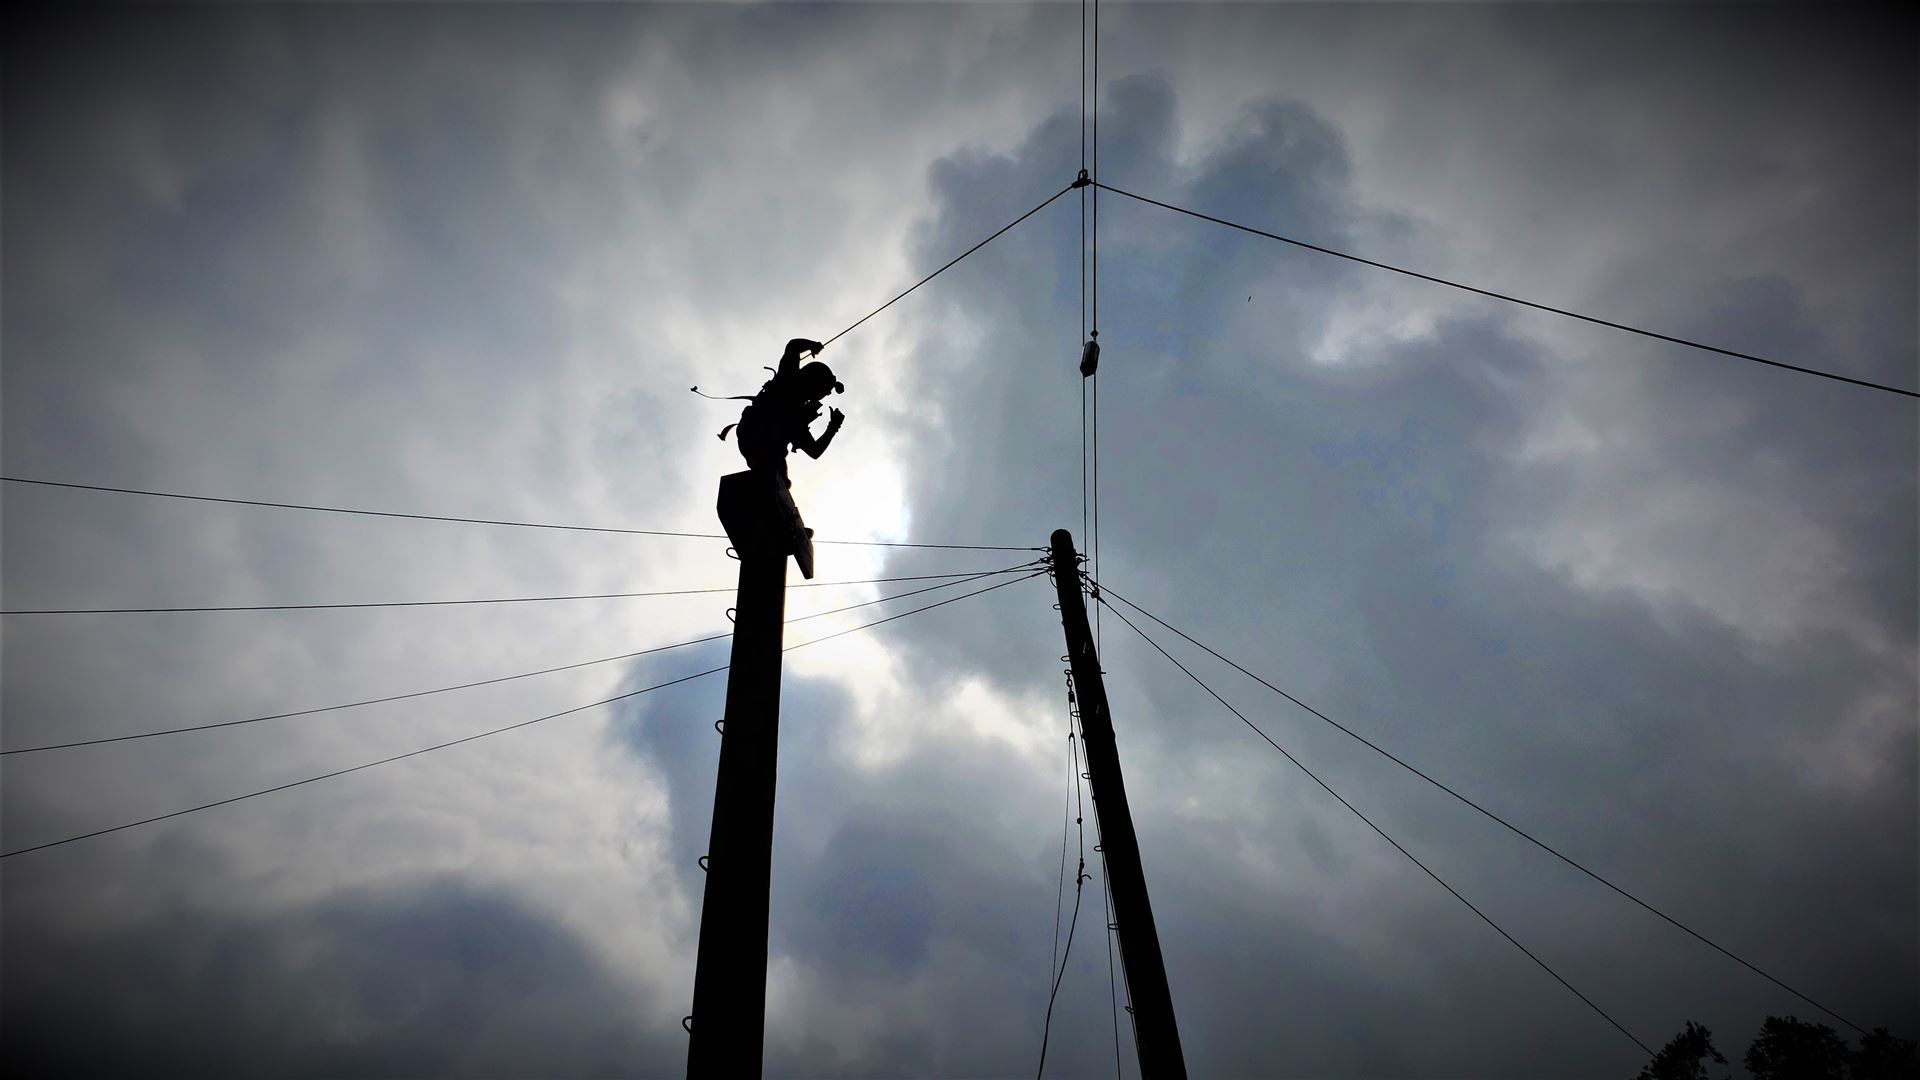 Silhouetted by the sun, a Jr strikes a powerful pose atop a 40-ft pole, ready for the challenge to punch a hanging buoy, a 5-ft jump away.